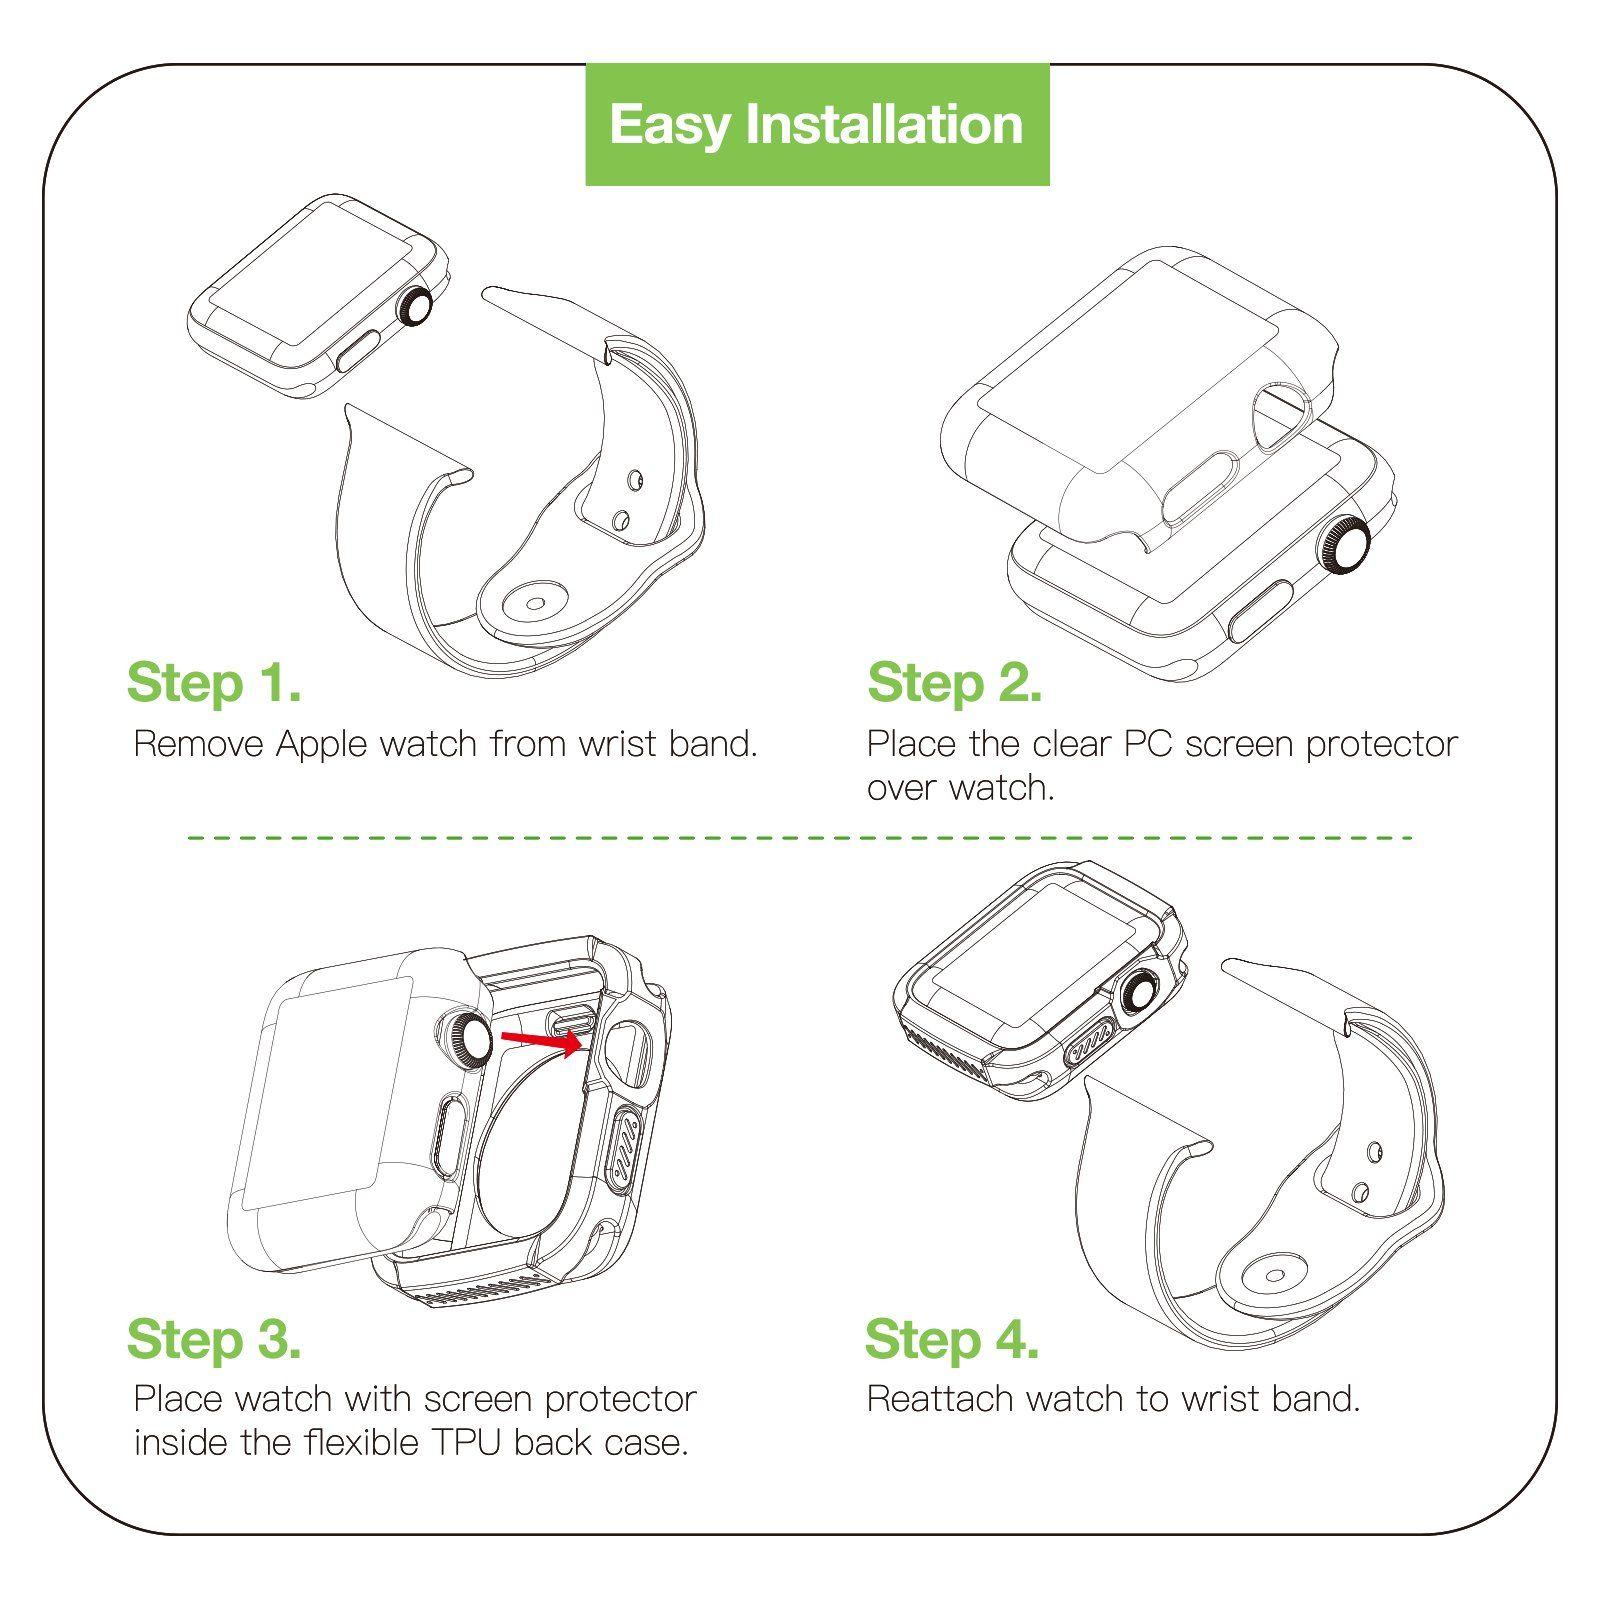 Apple Watch 3 Case, iVAPO 2-Pack Apple Watch Case with Screen Protector Cover Anti-scratch 360° Shock Absorption Hard Protective Bumper Case for Apple Watch Series 3 42mm Black (Need Stronger Press) by iVAPO (Image #5)